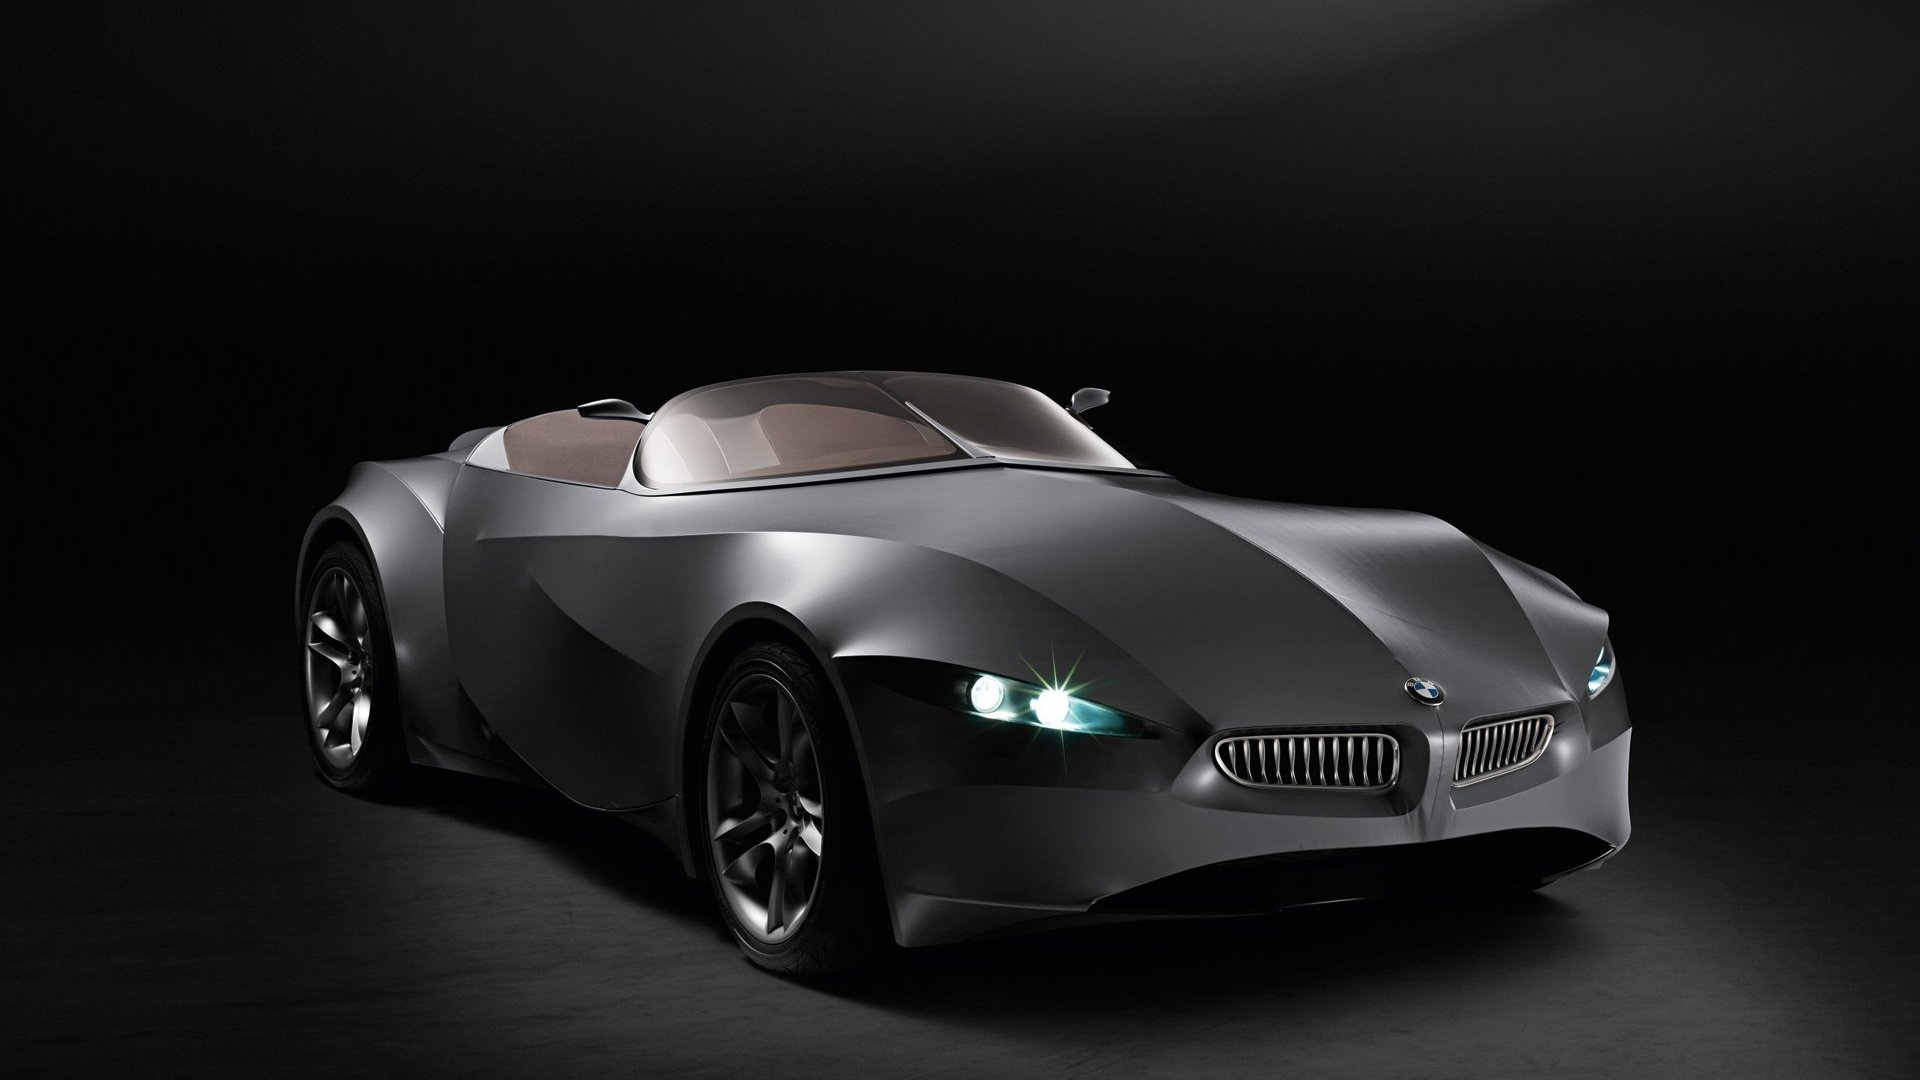 Best BMW Wallpaper ID216341 For High Resolution Full Hd Computer